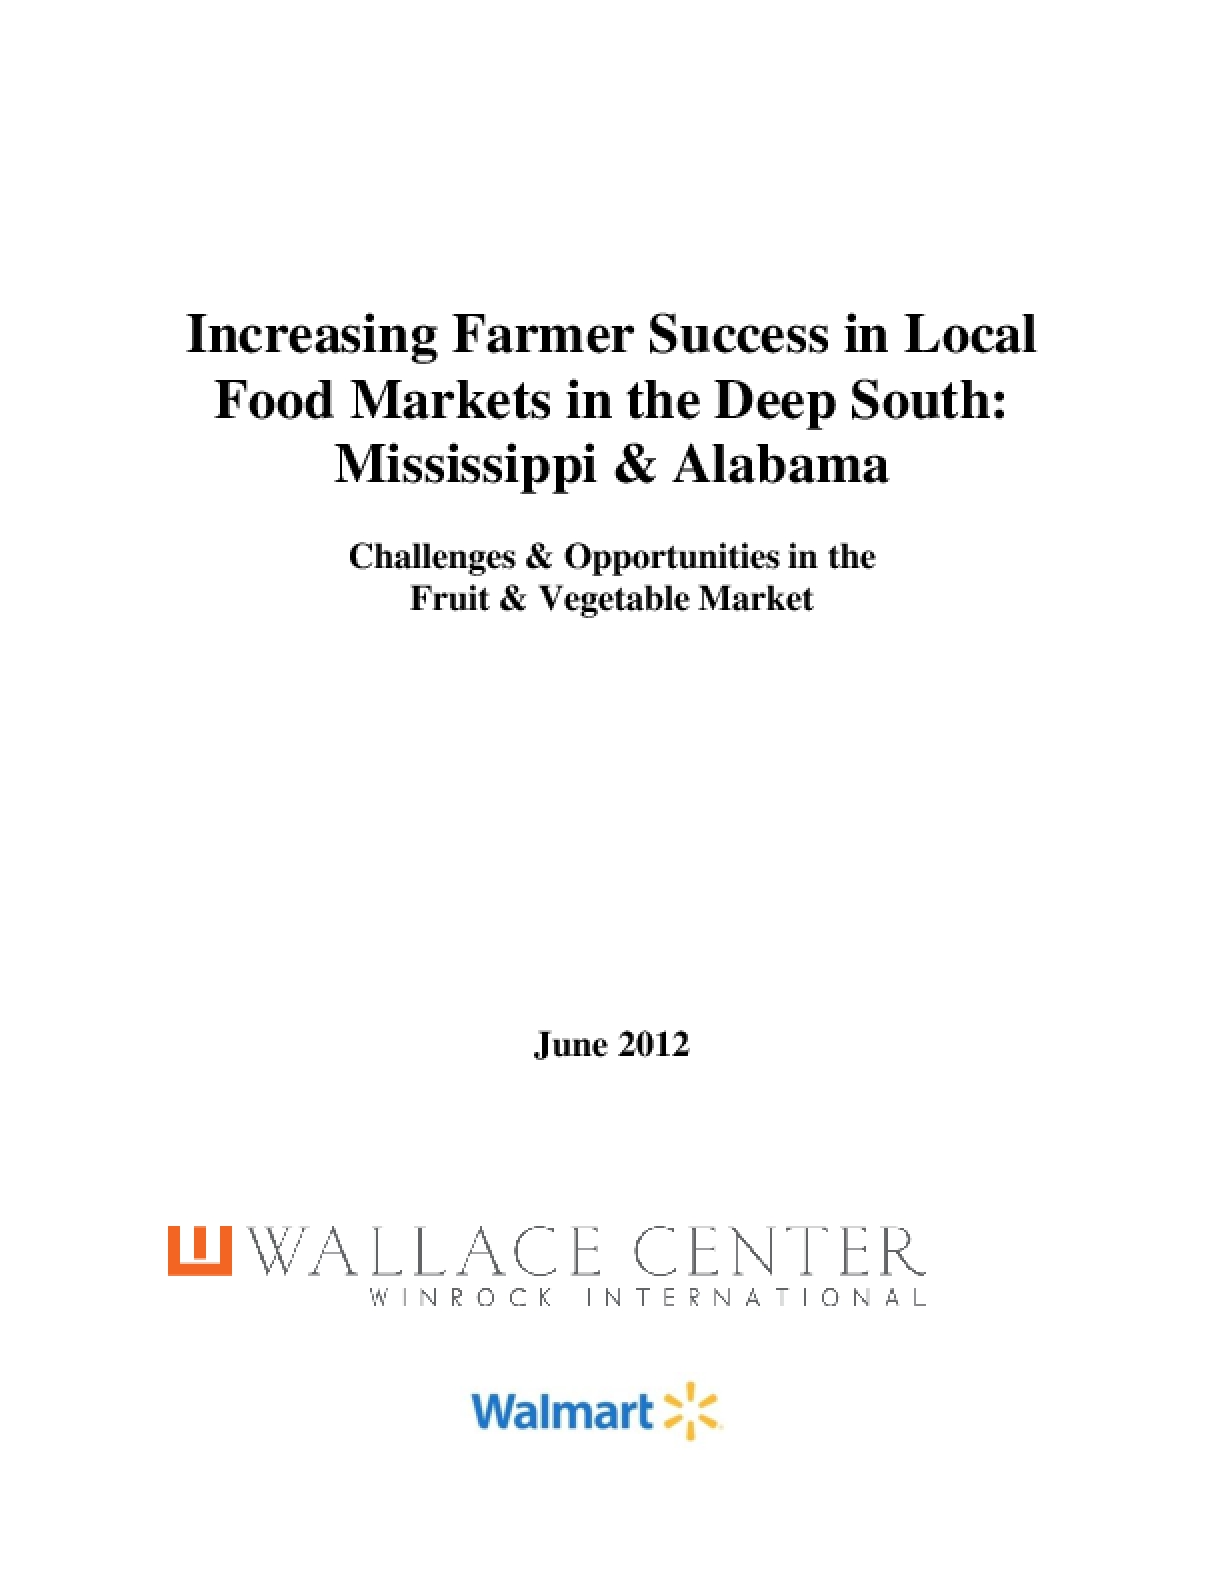 Increasing Farmer Success in Local Food Markets in the Deep South: Mississippi and Alabama - Challenges and Opportunities in the Fruit and Vegetable Market